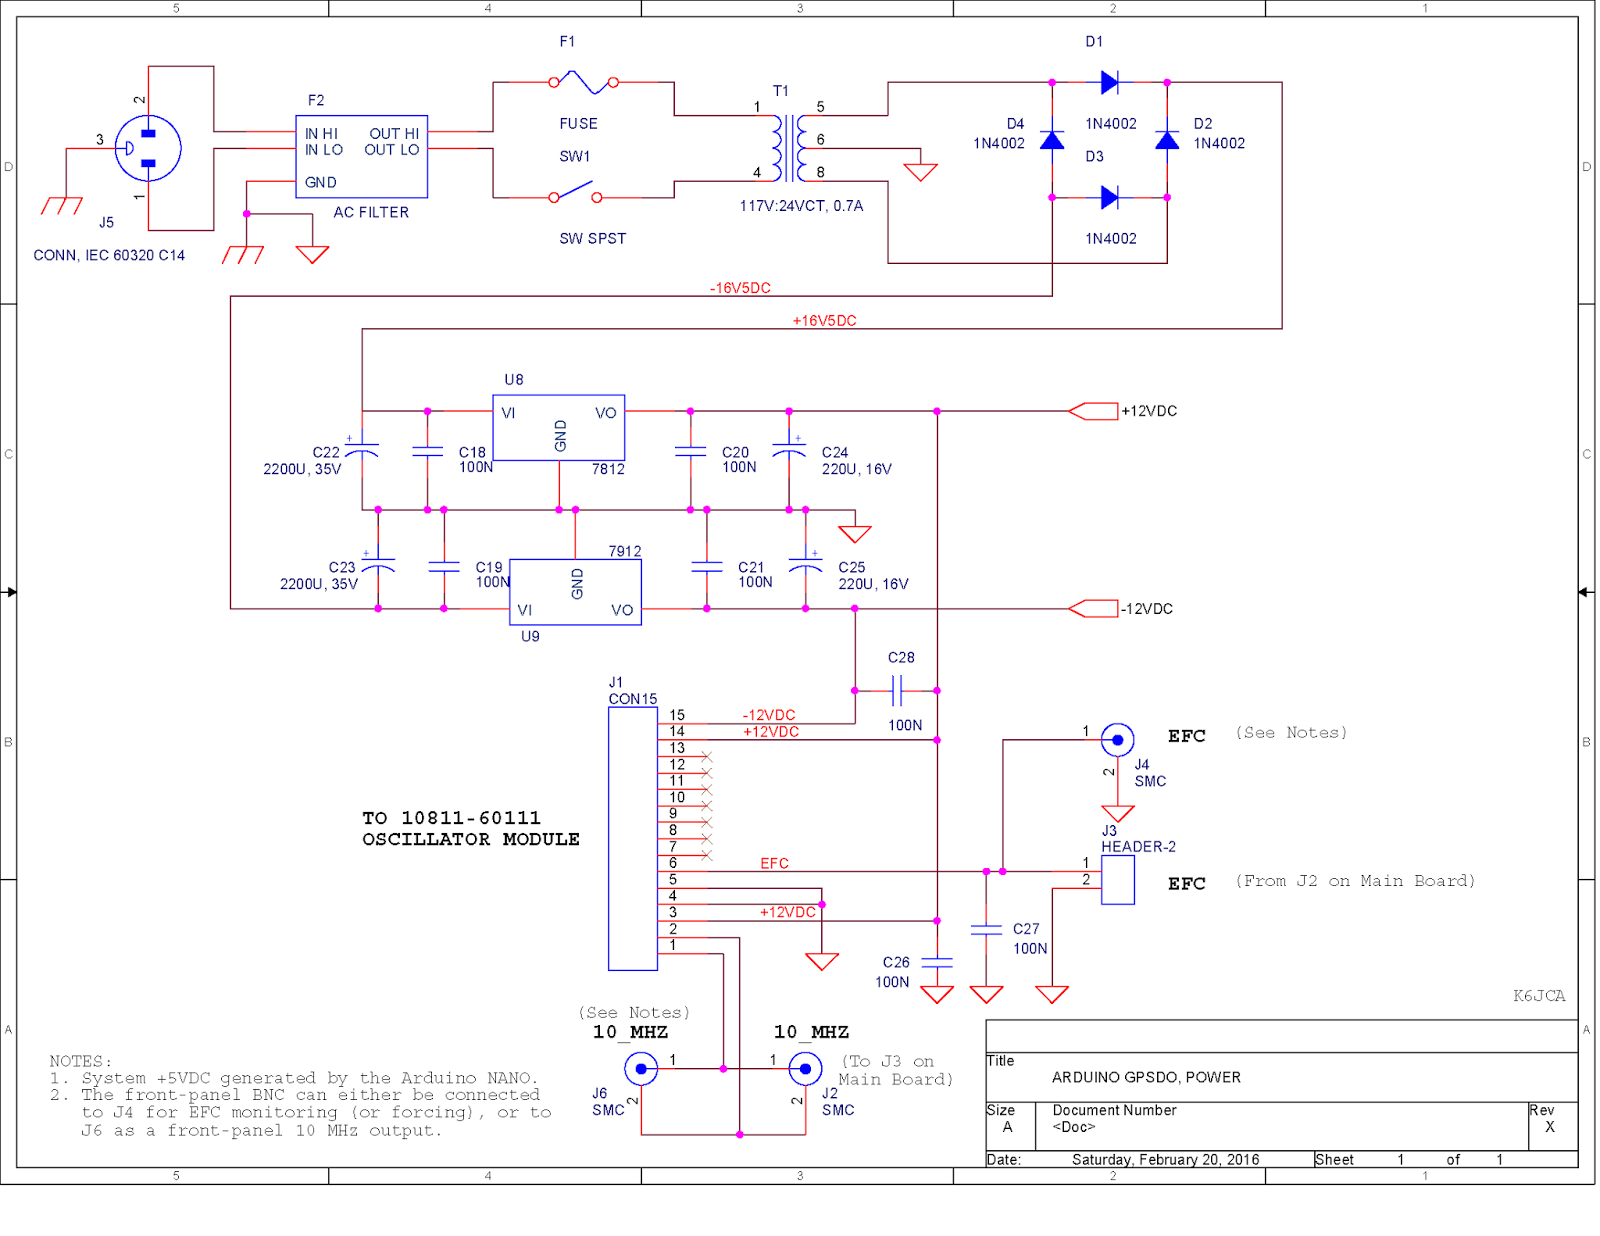 K6jca An Arduino Based Gps Disciplined Oscillator Schematic Diagram Circuit Software Download Notes On The Power Supply Page